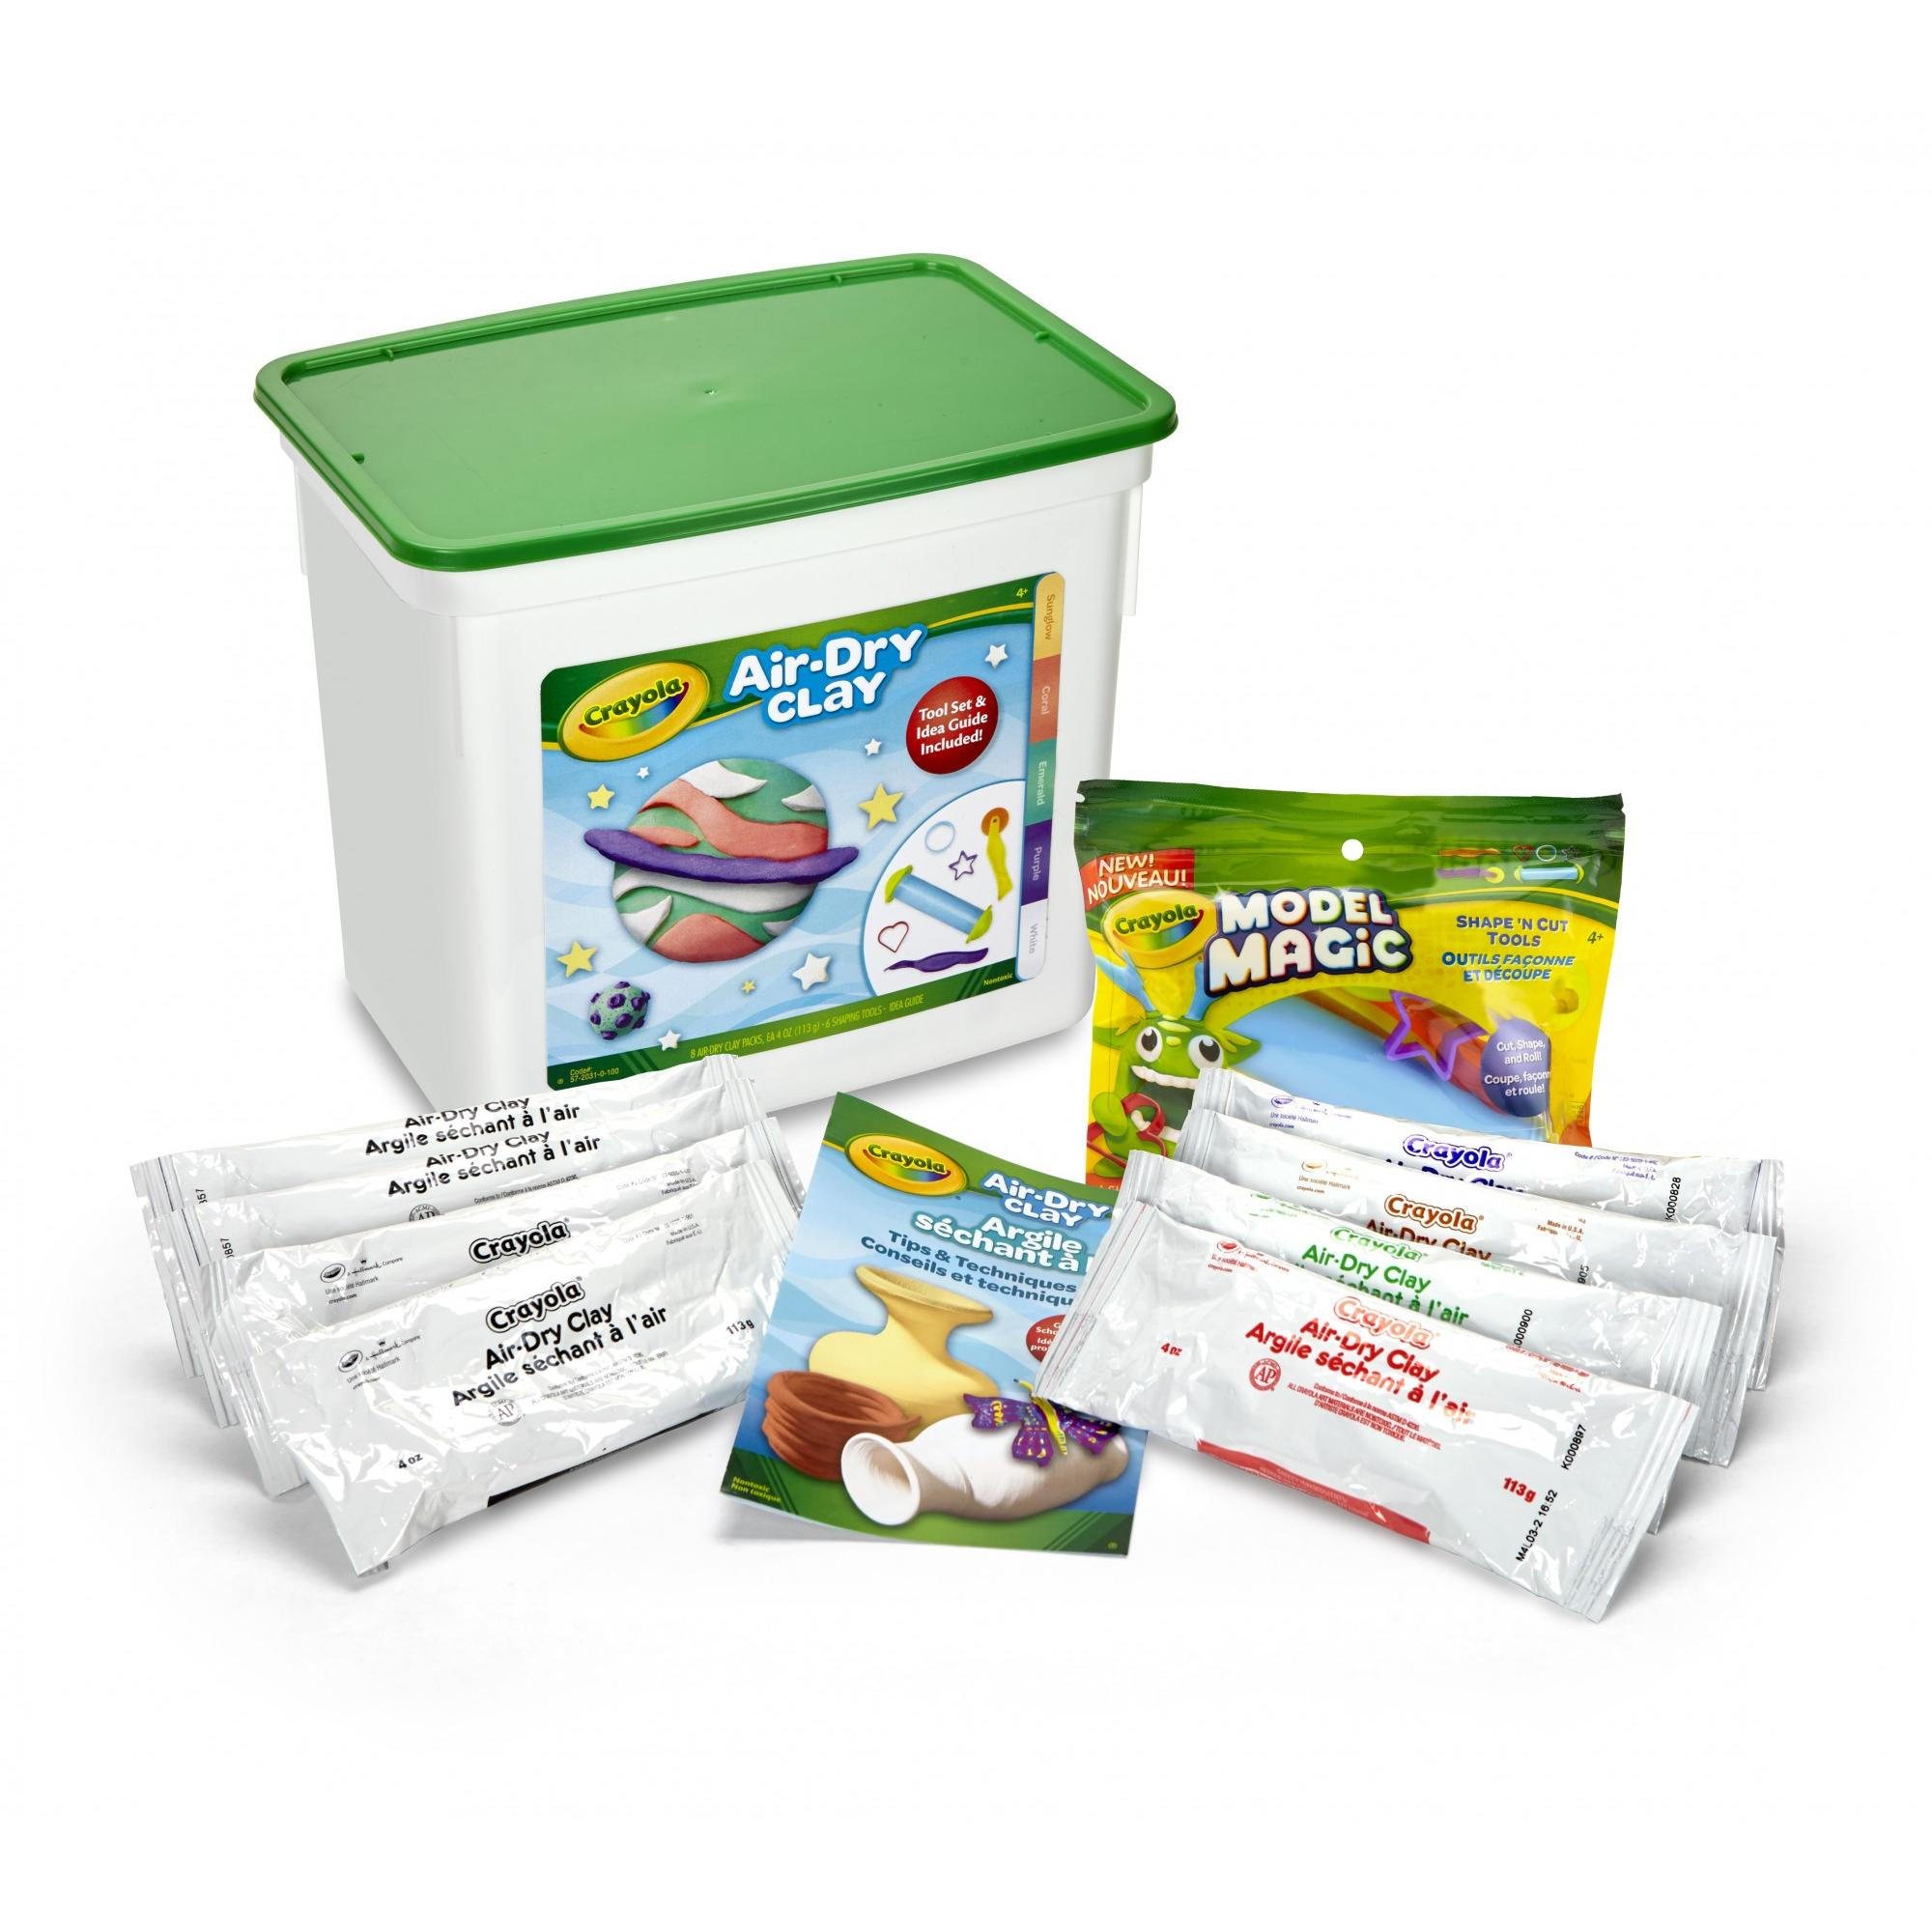 Crayola Air-Dry Clay Set, Clay Tools, Art Gift for Kids and Adults